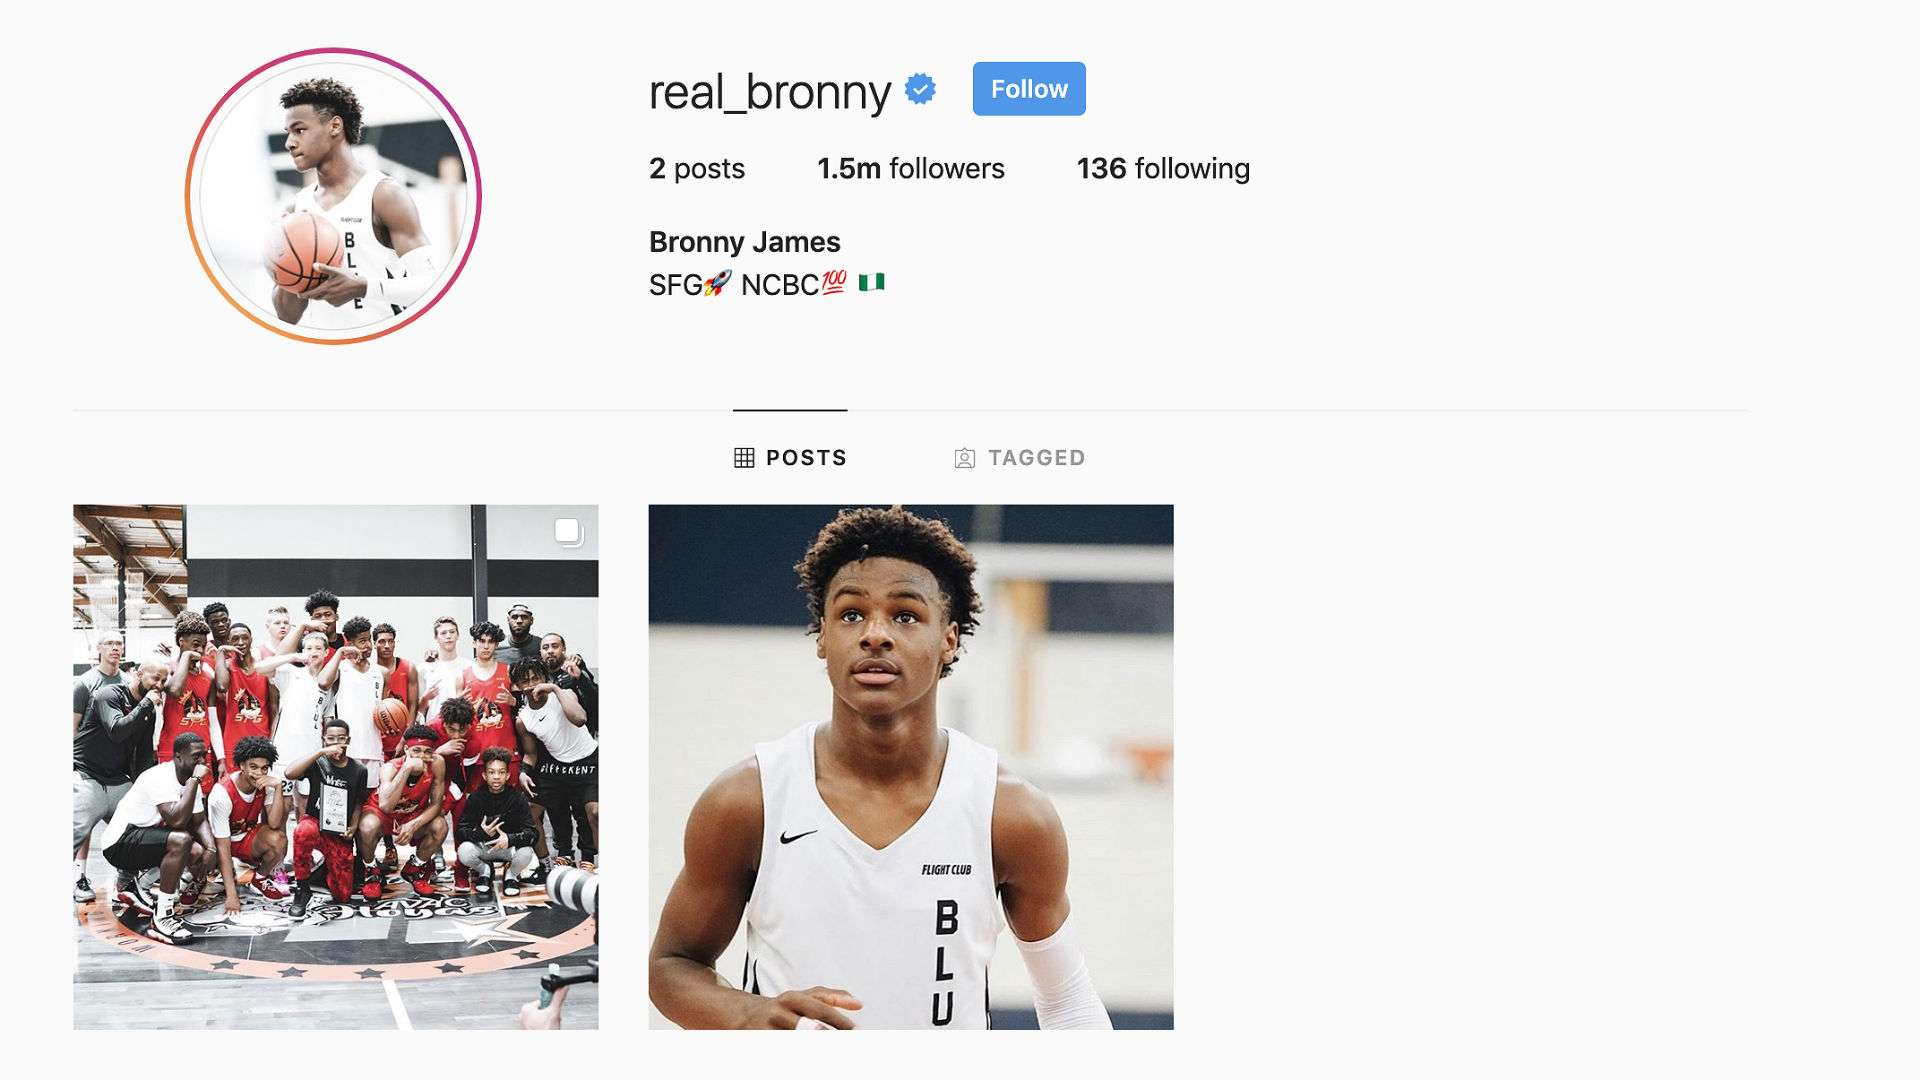 Bronny James' Instagram hits 1M followers in 24 hours